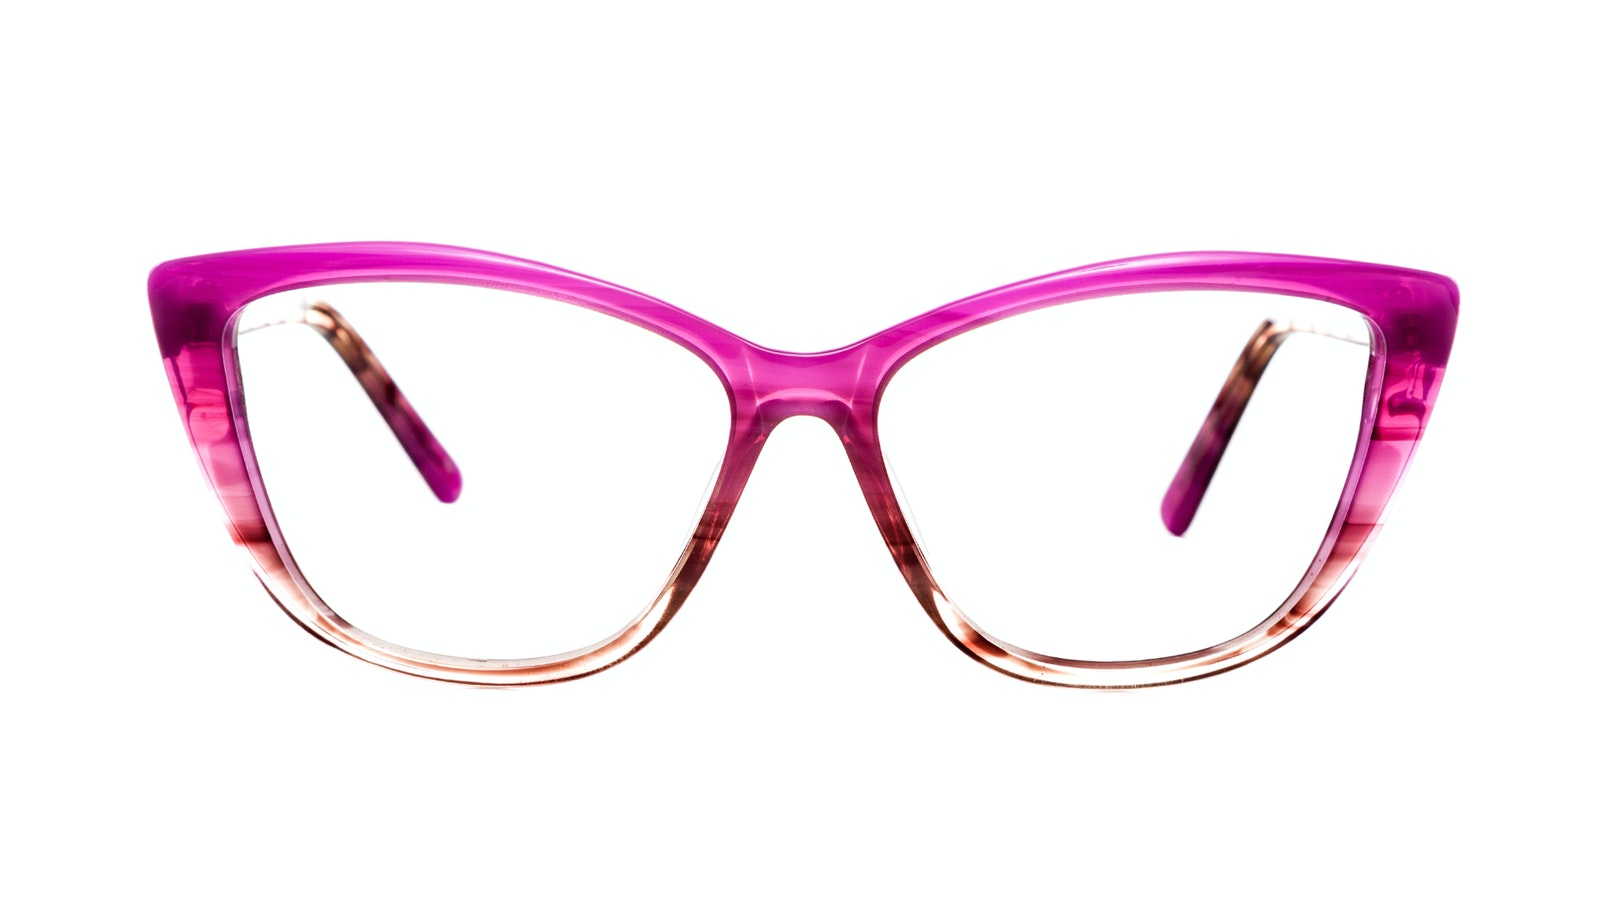 Affordable Fashion Glasses Cat Eye Daring Cateye Eyeglasses Women Dolled Up Cosmo Pink